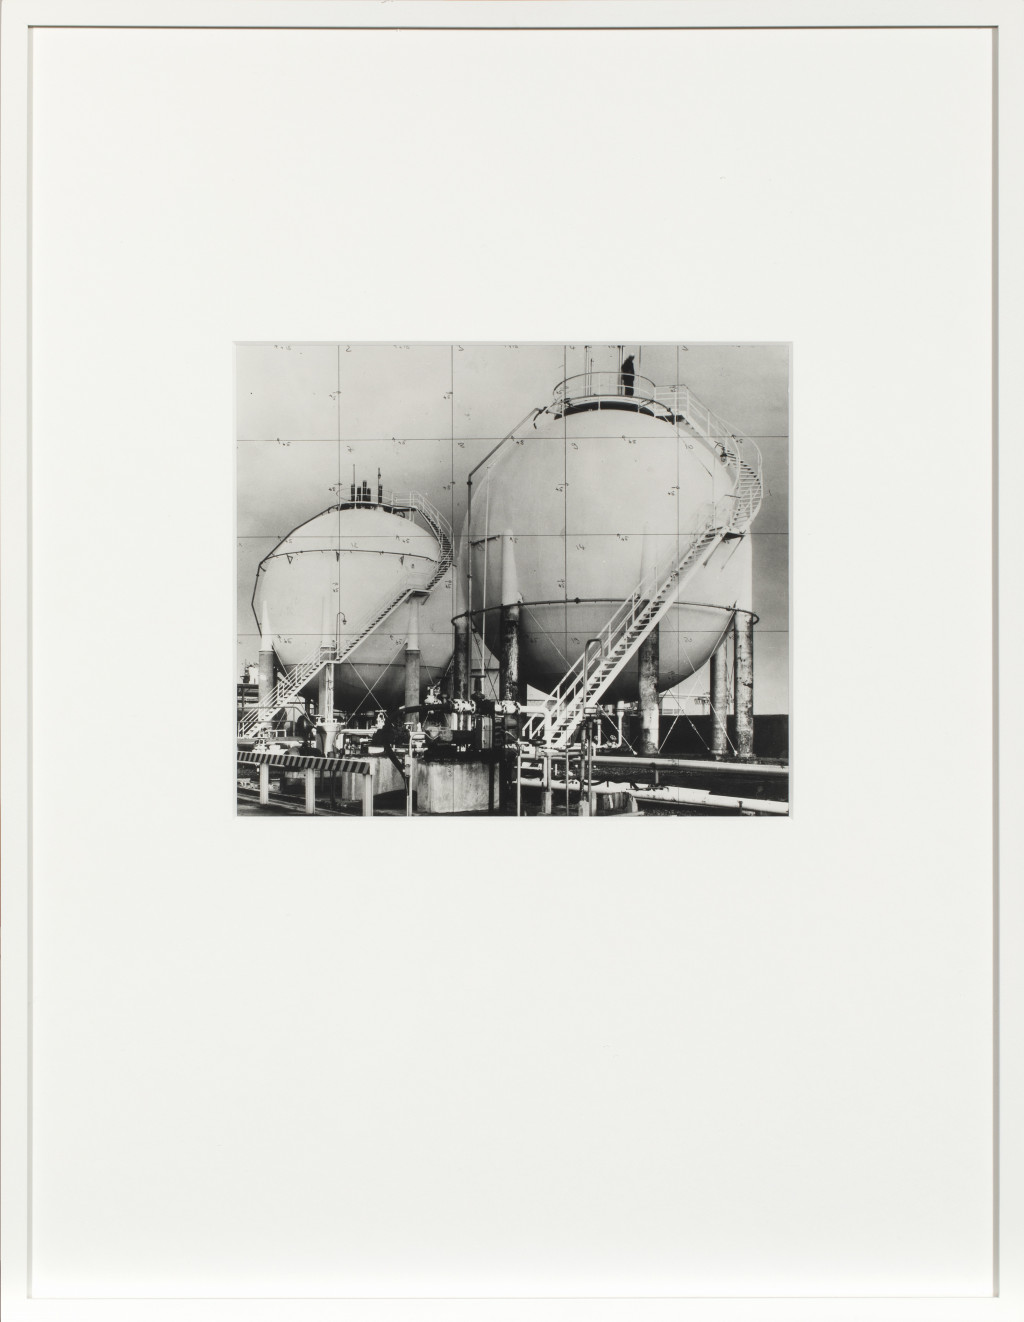 The Metamorphosis of a Canal House, 1972, Series of 6 unique Gelatine Silver Prints, documentation of an environmental action: installation of a giant photo on photographic linen, showing a petrochemical refinery. Met dank aan ULAY Foundation.